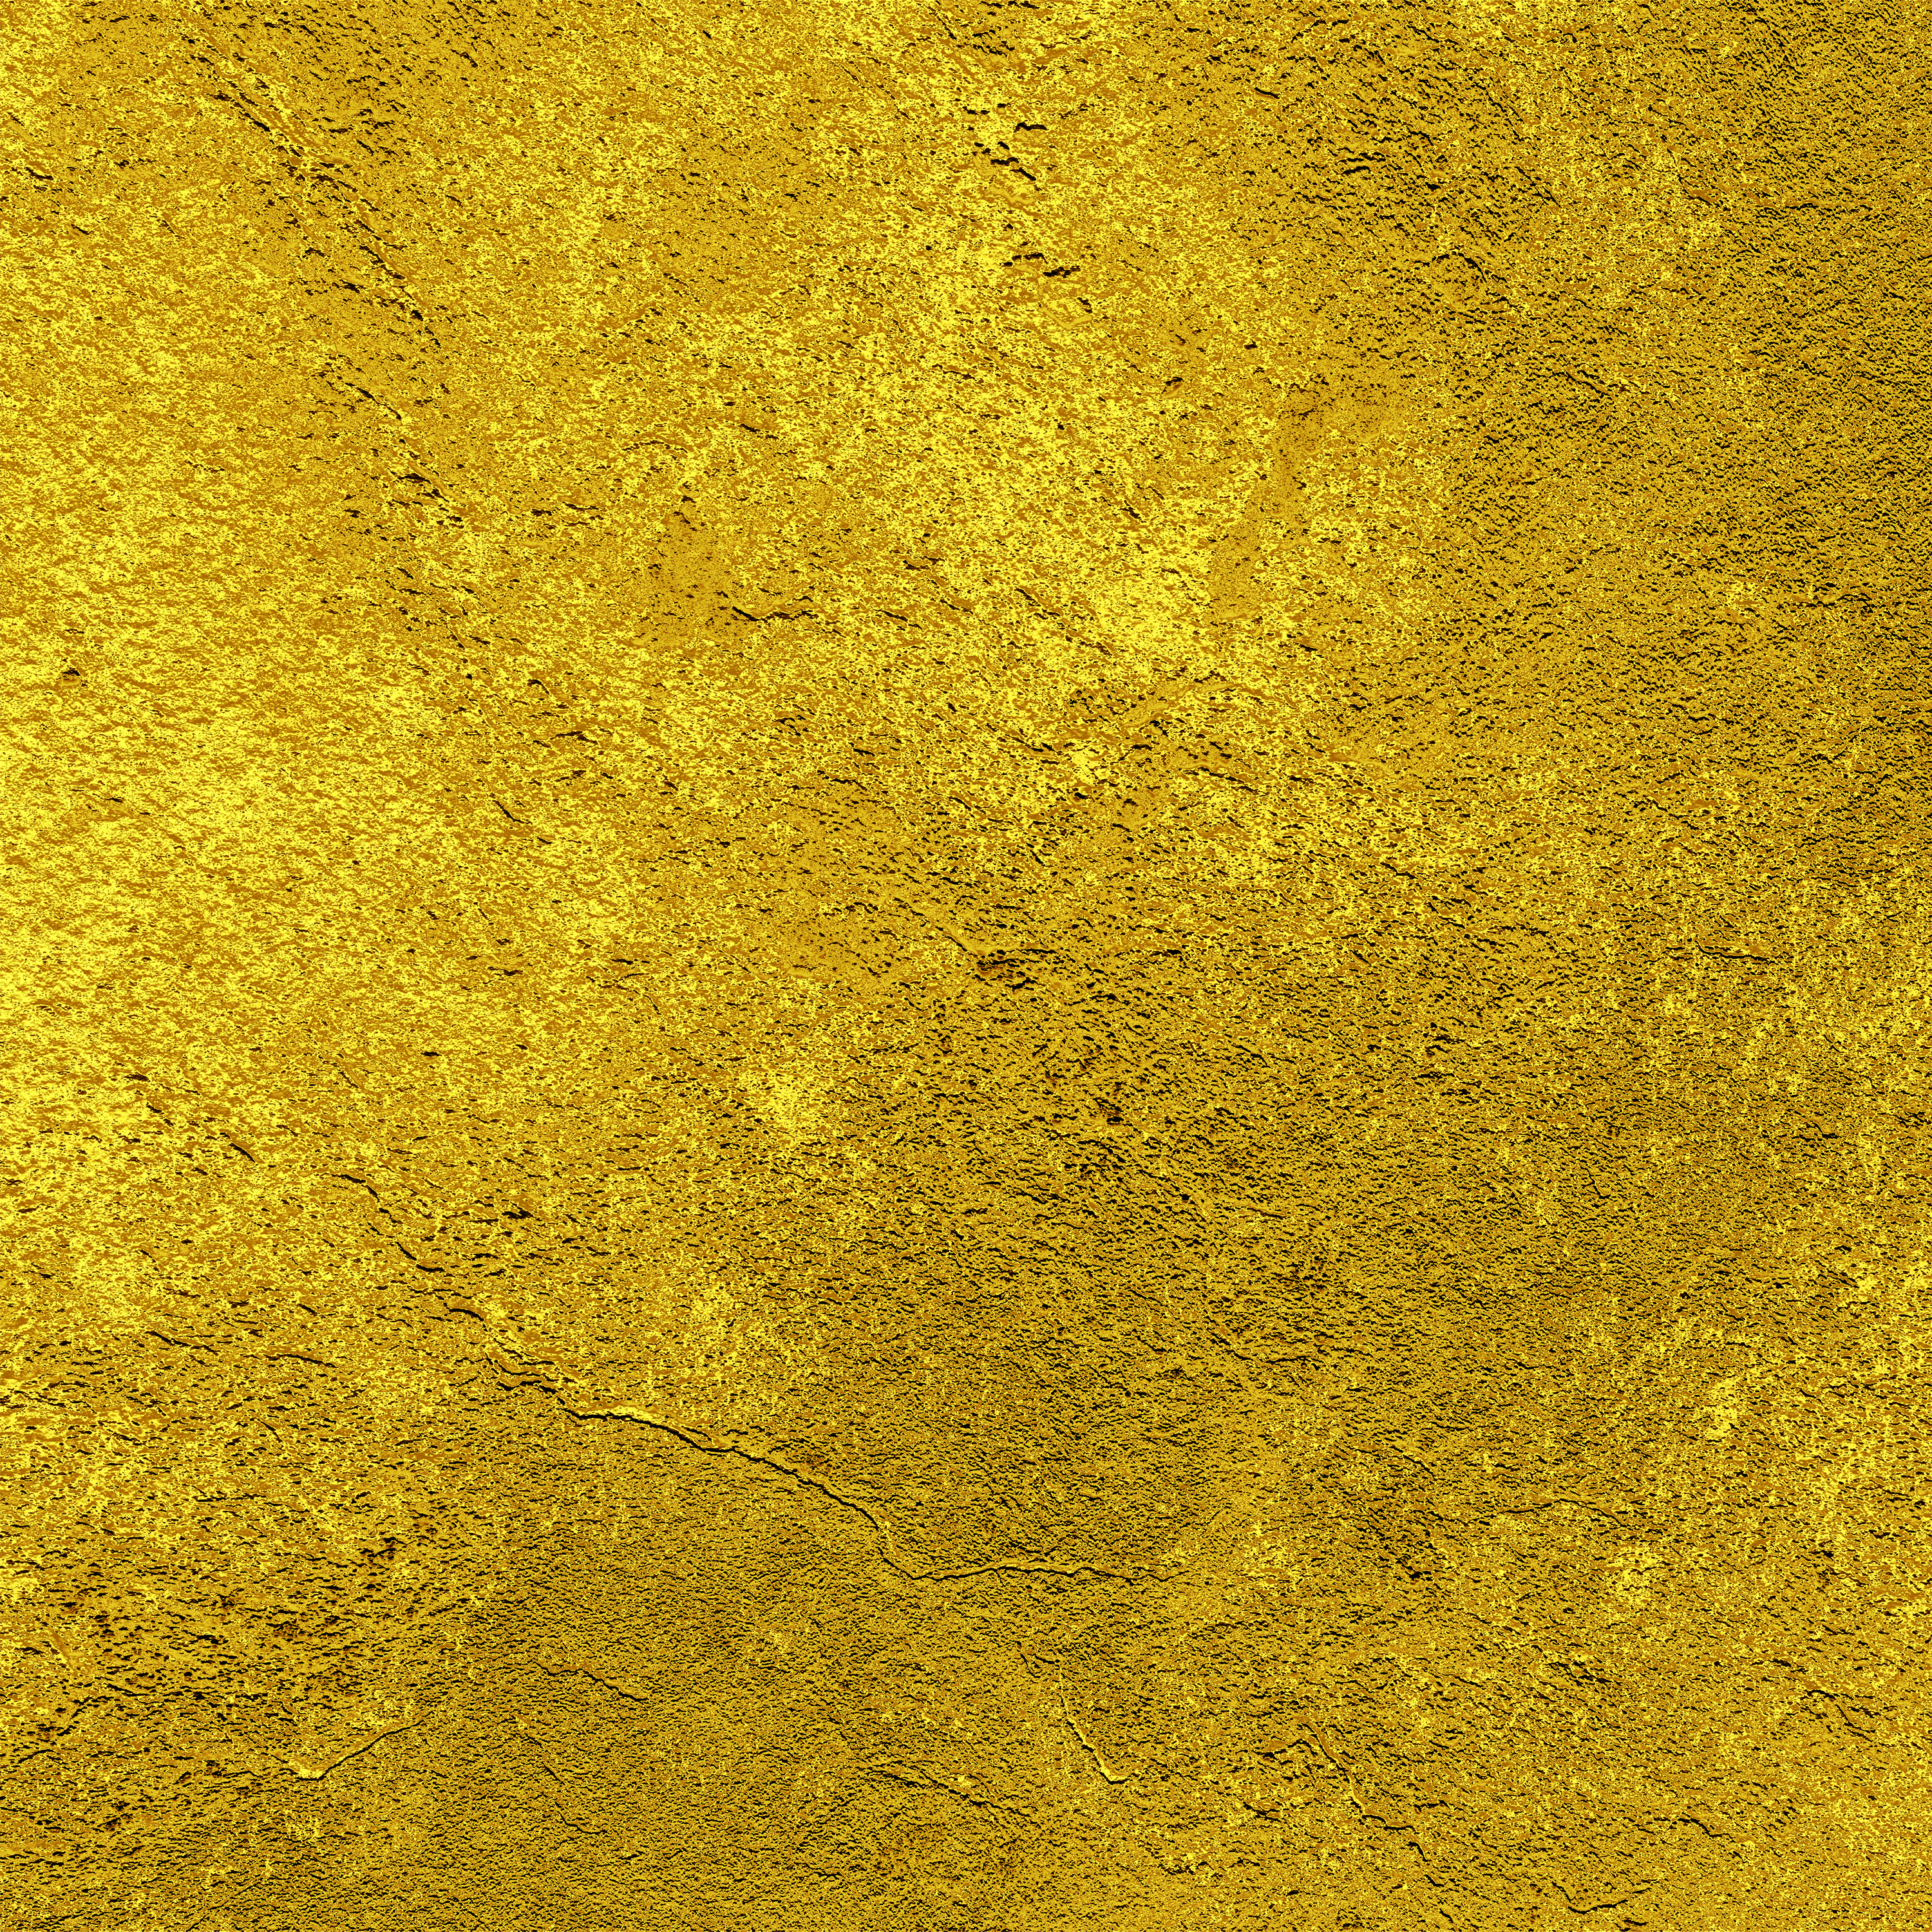 Foil Gold Background.